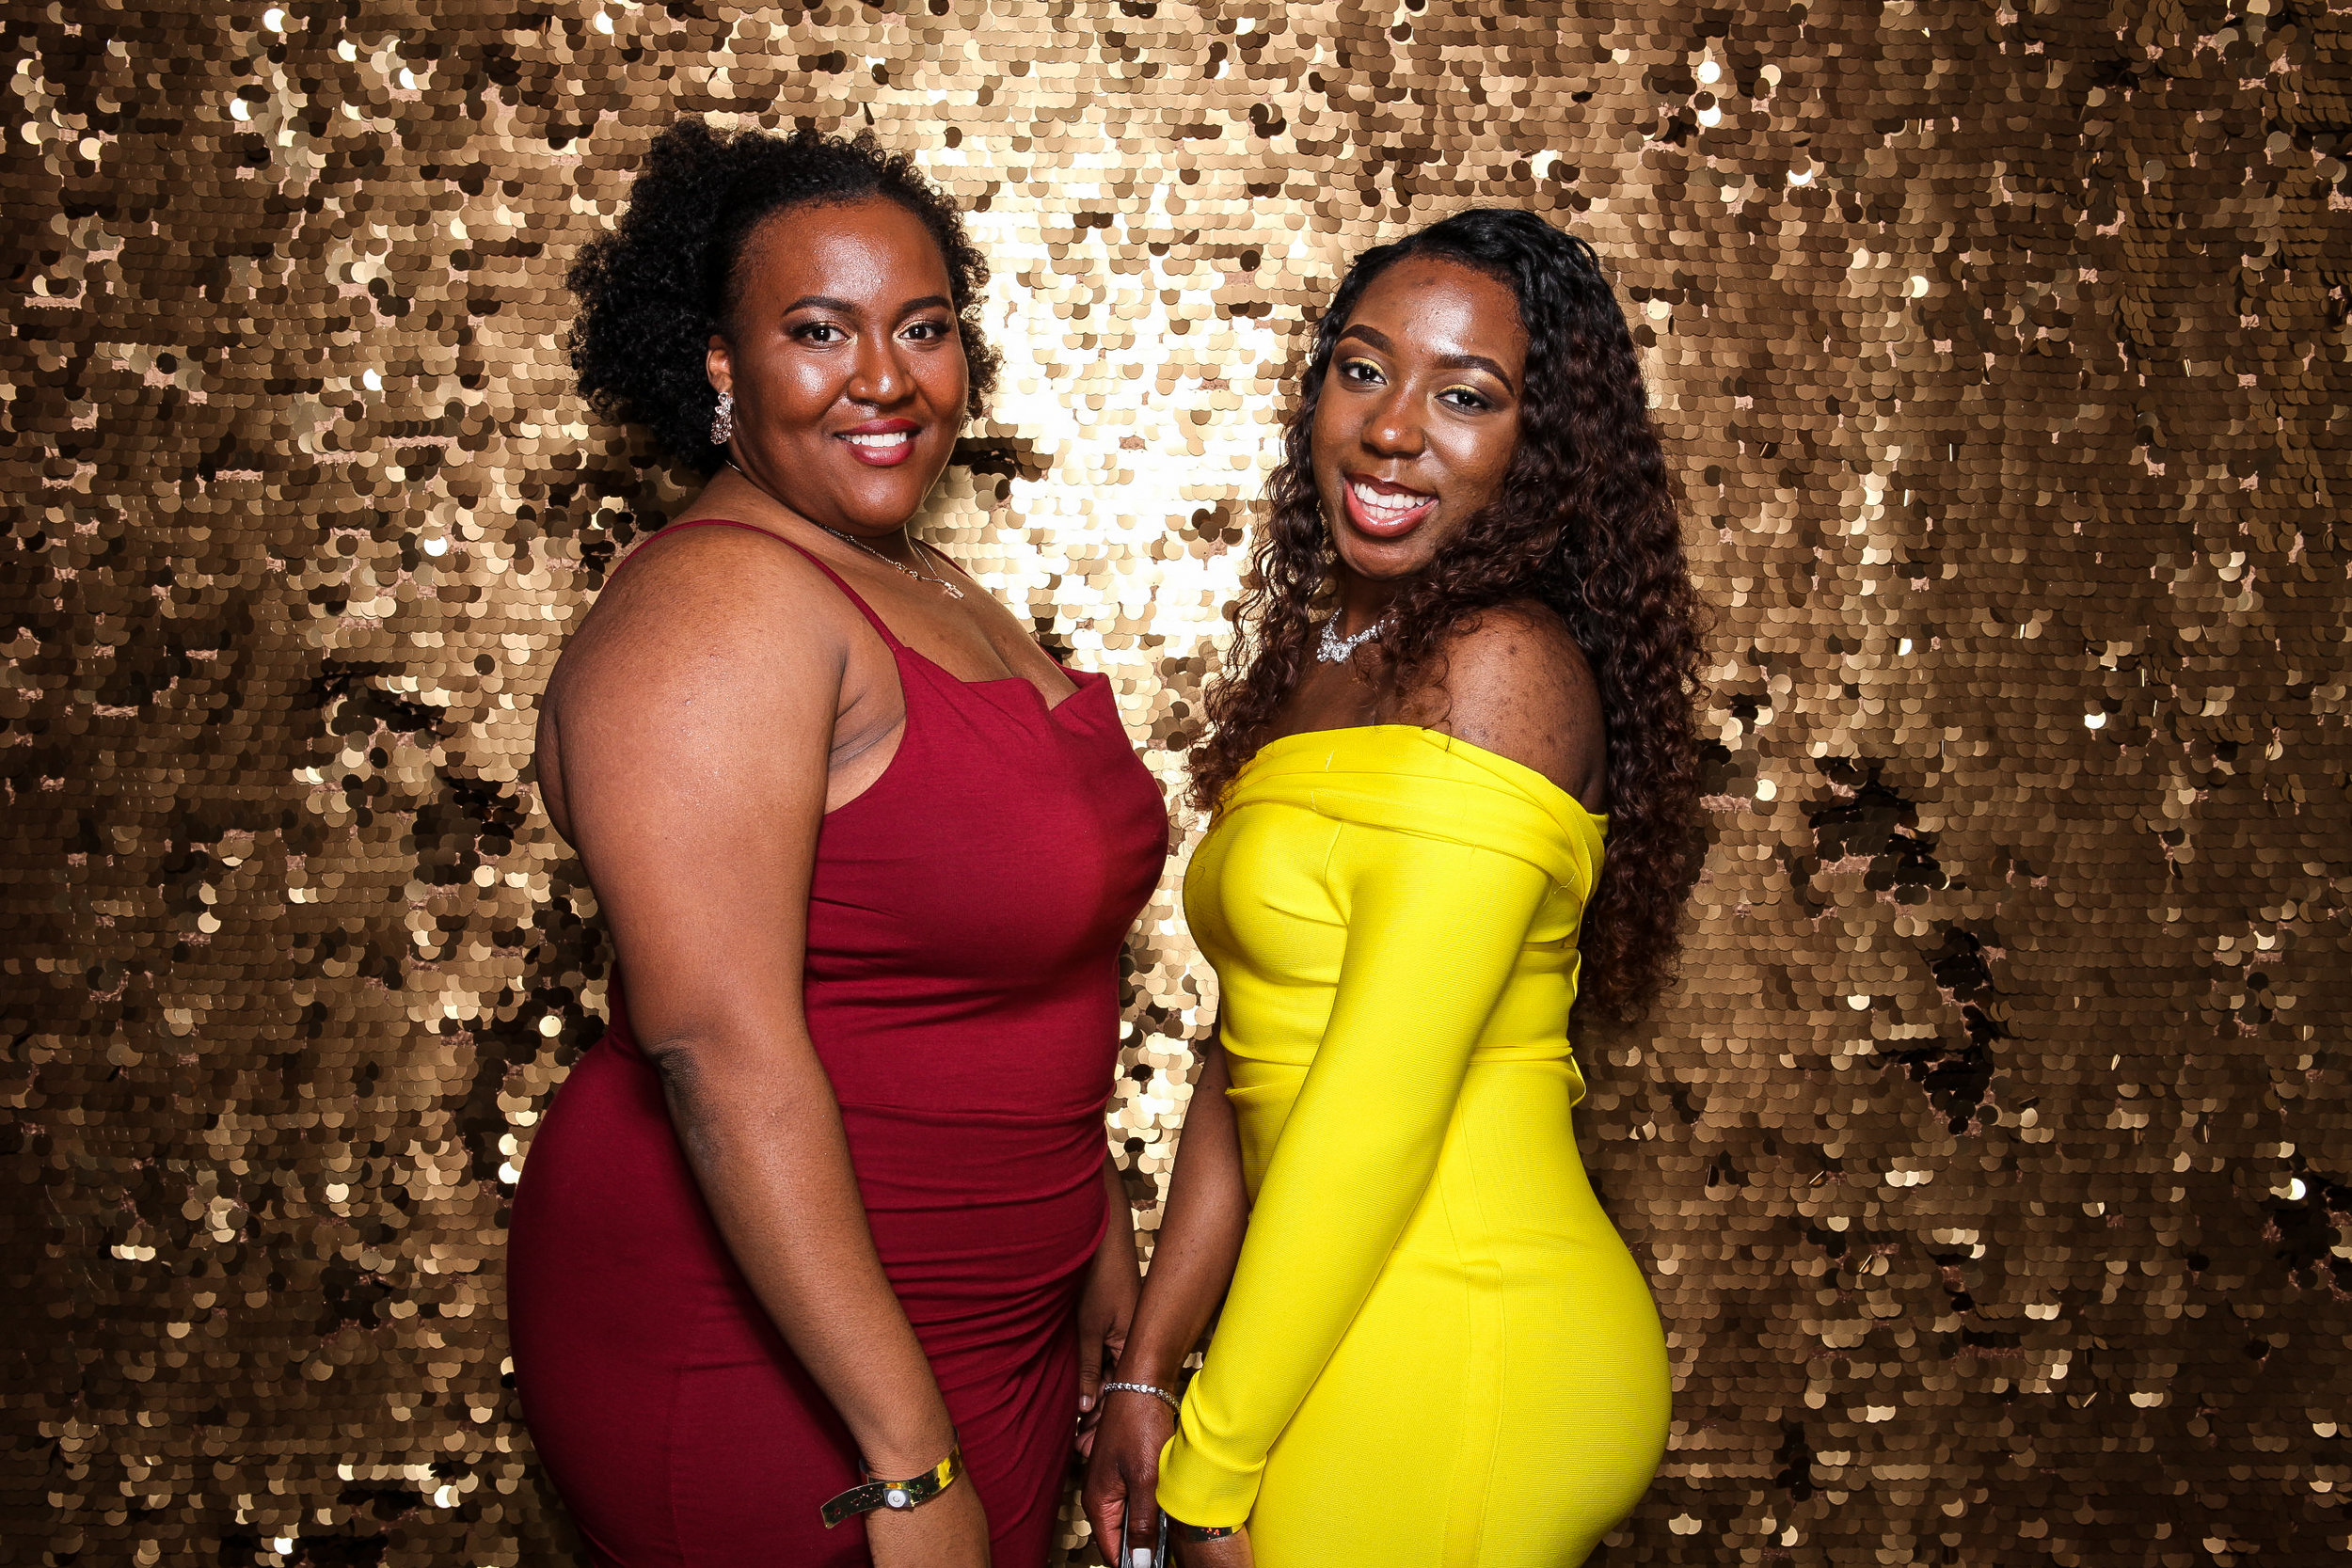 20190503_Adelphi_Senior_Formal-366.jpg